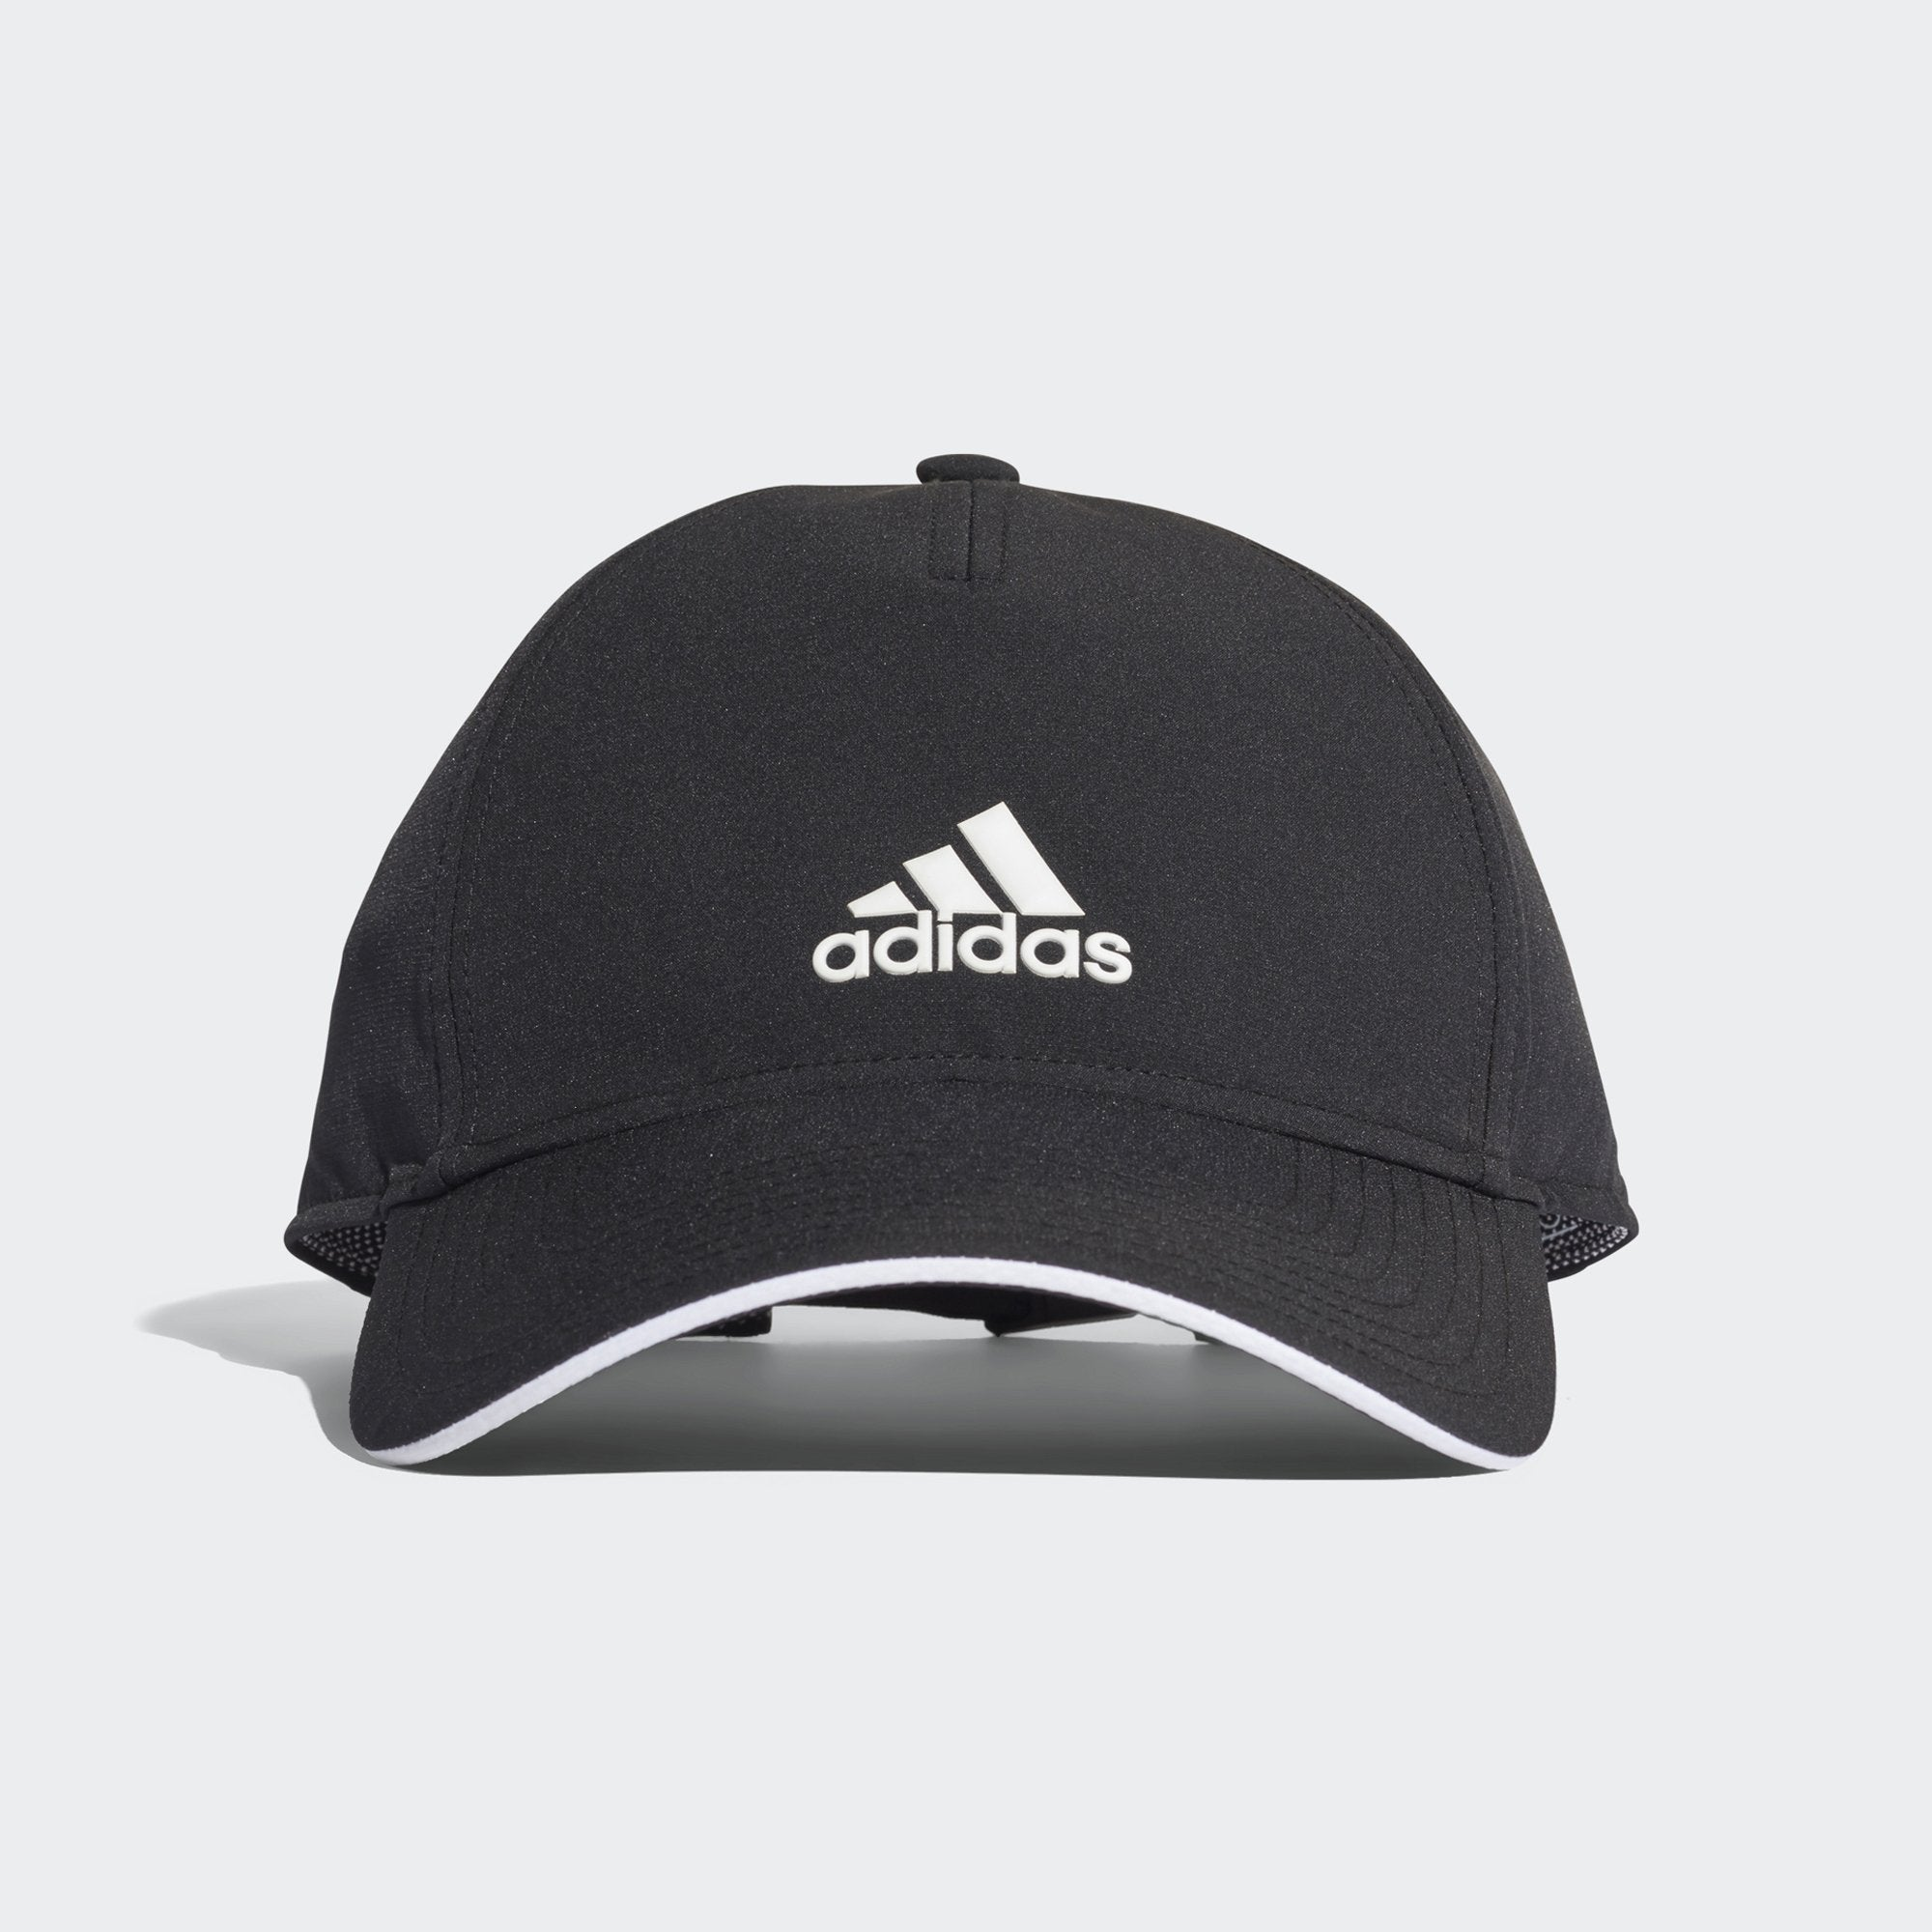 2d730924b0 Buy adidas Men C40 Climalite Cap Online in Singapore | Royal Sporting House